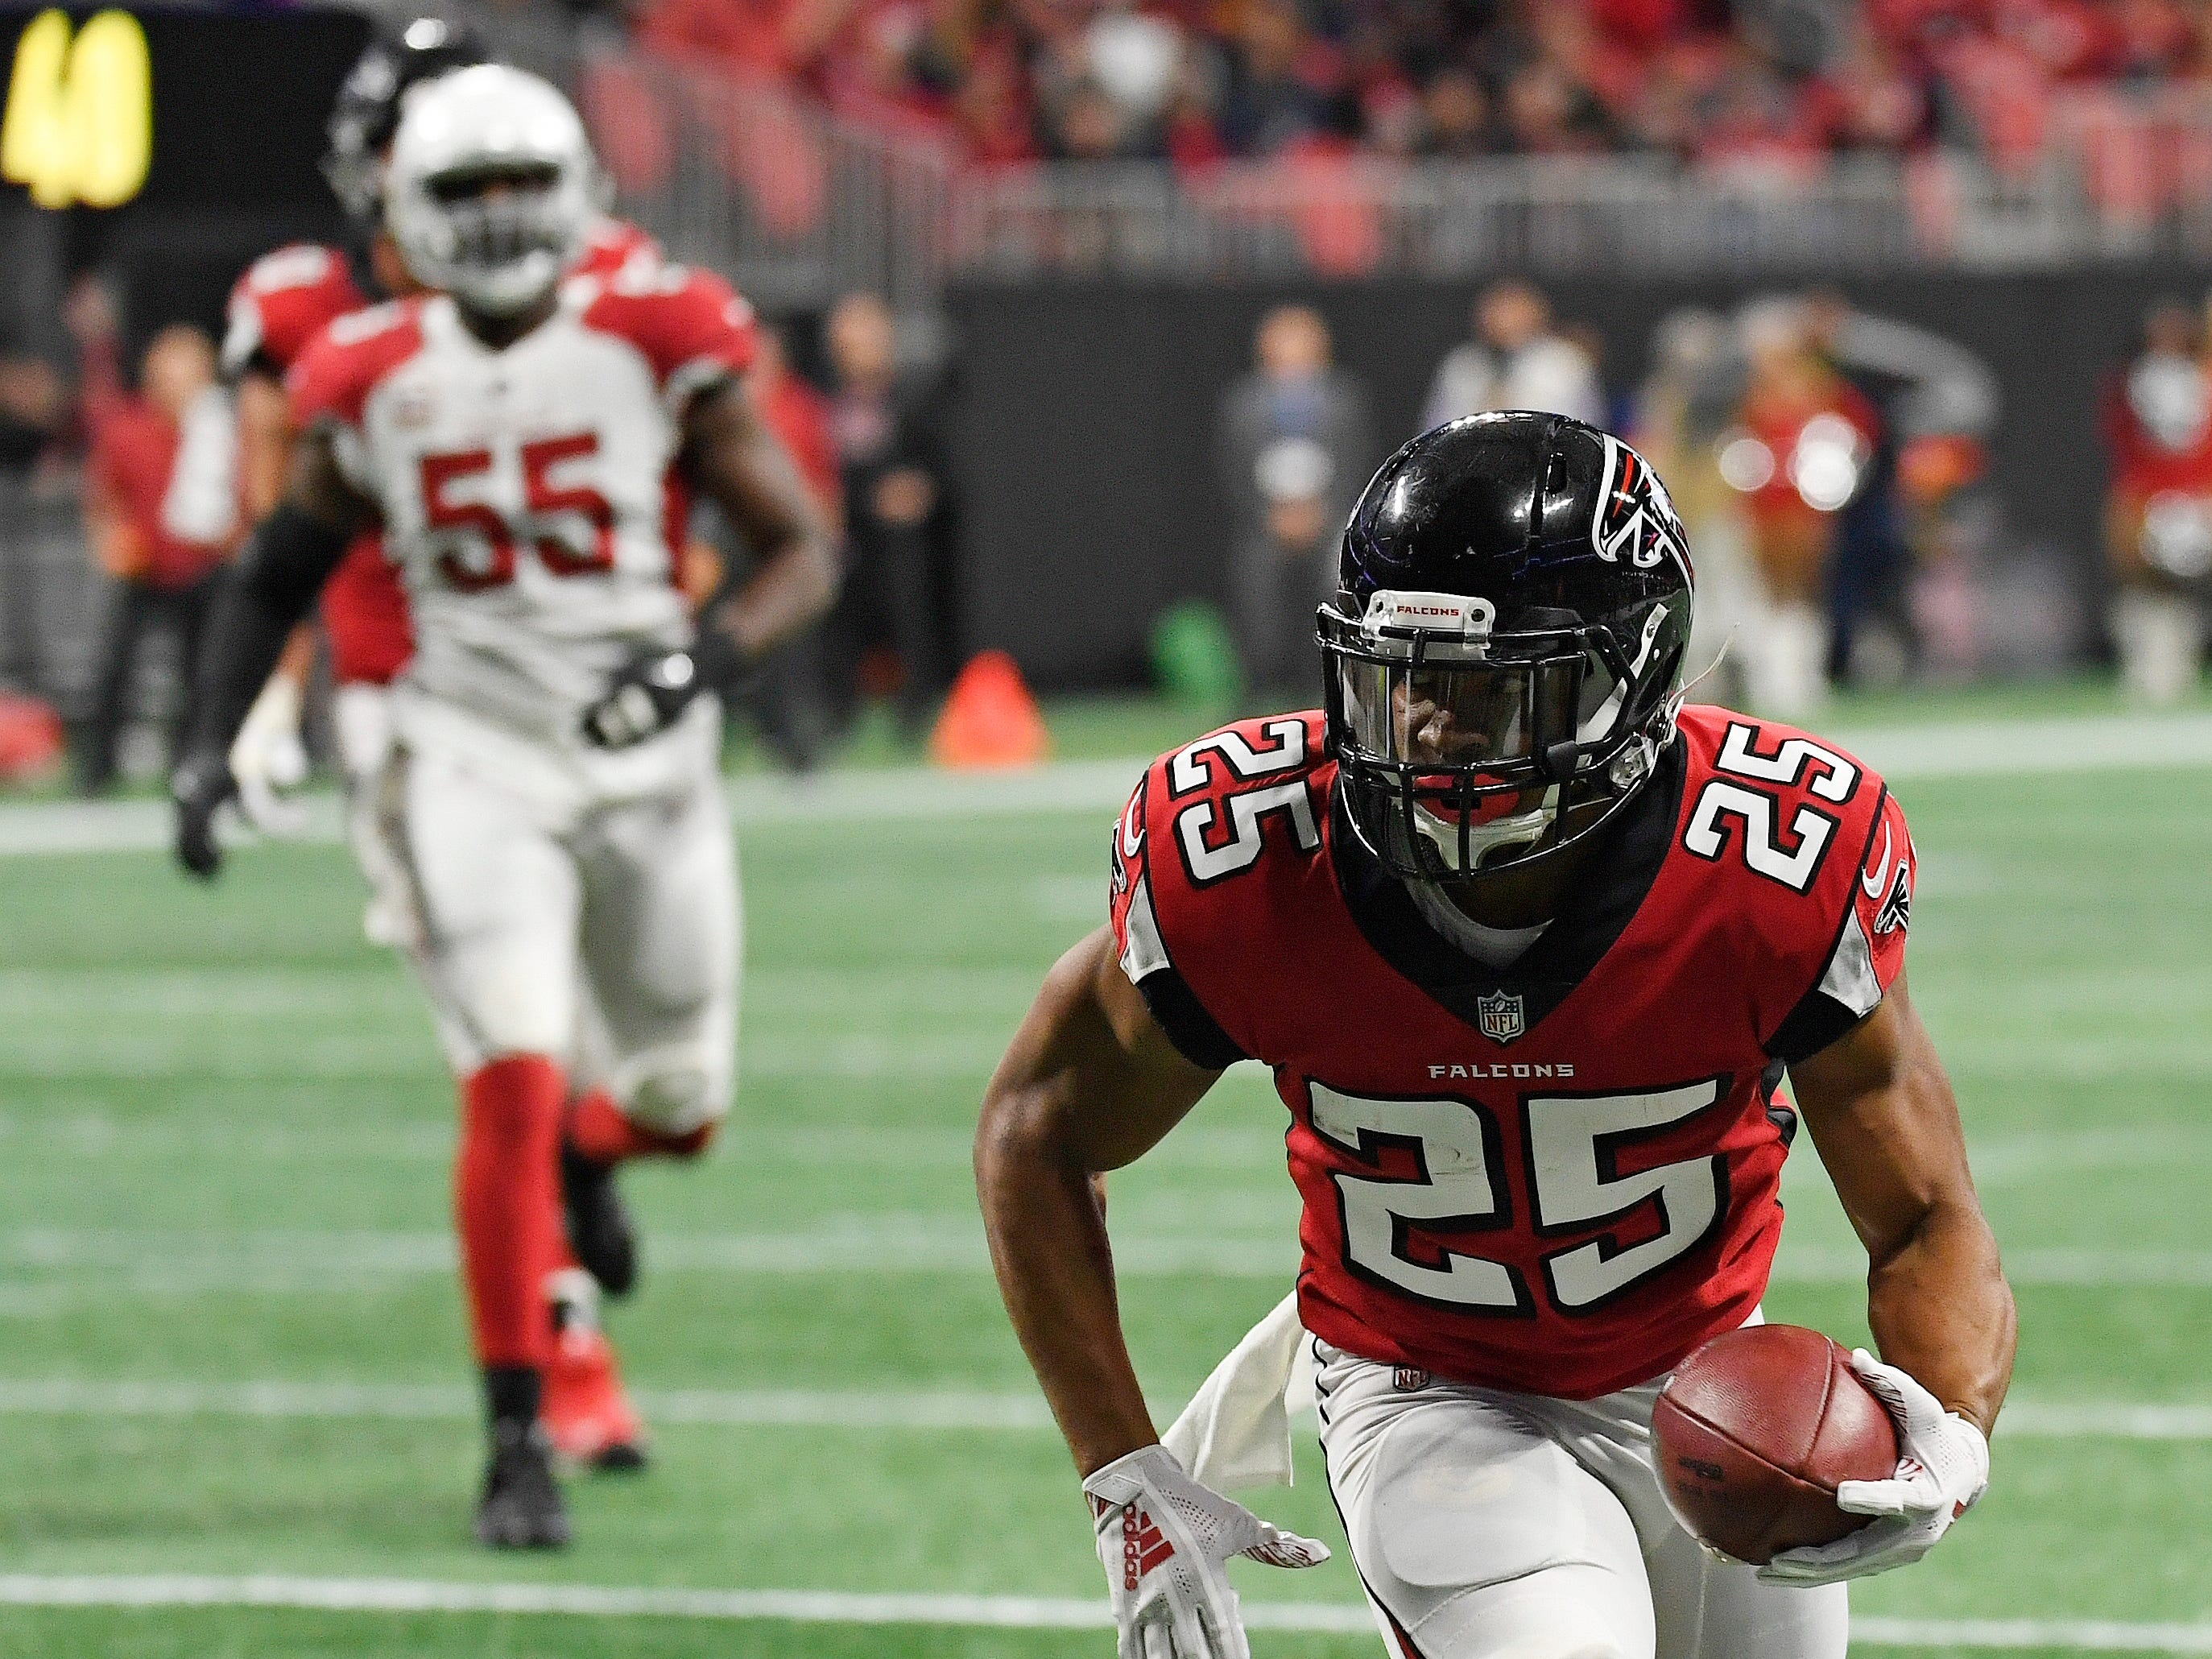 Atlanta Falcons running back Ito Smith (25) runs against the Arizona Cardinals during the first half of an NFL football game, Sunday, Dec. 16, 2018, in Atlanta.